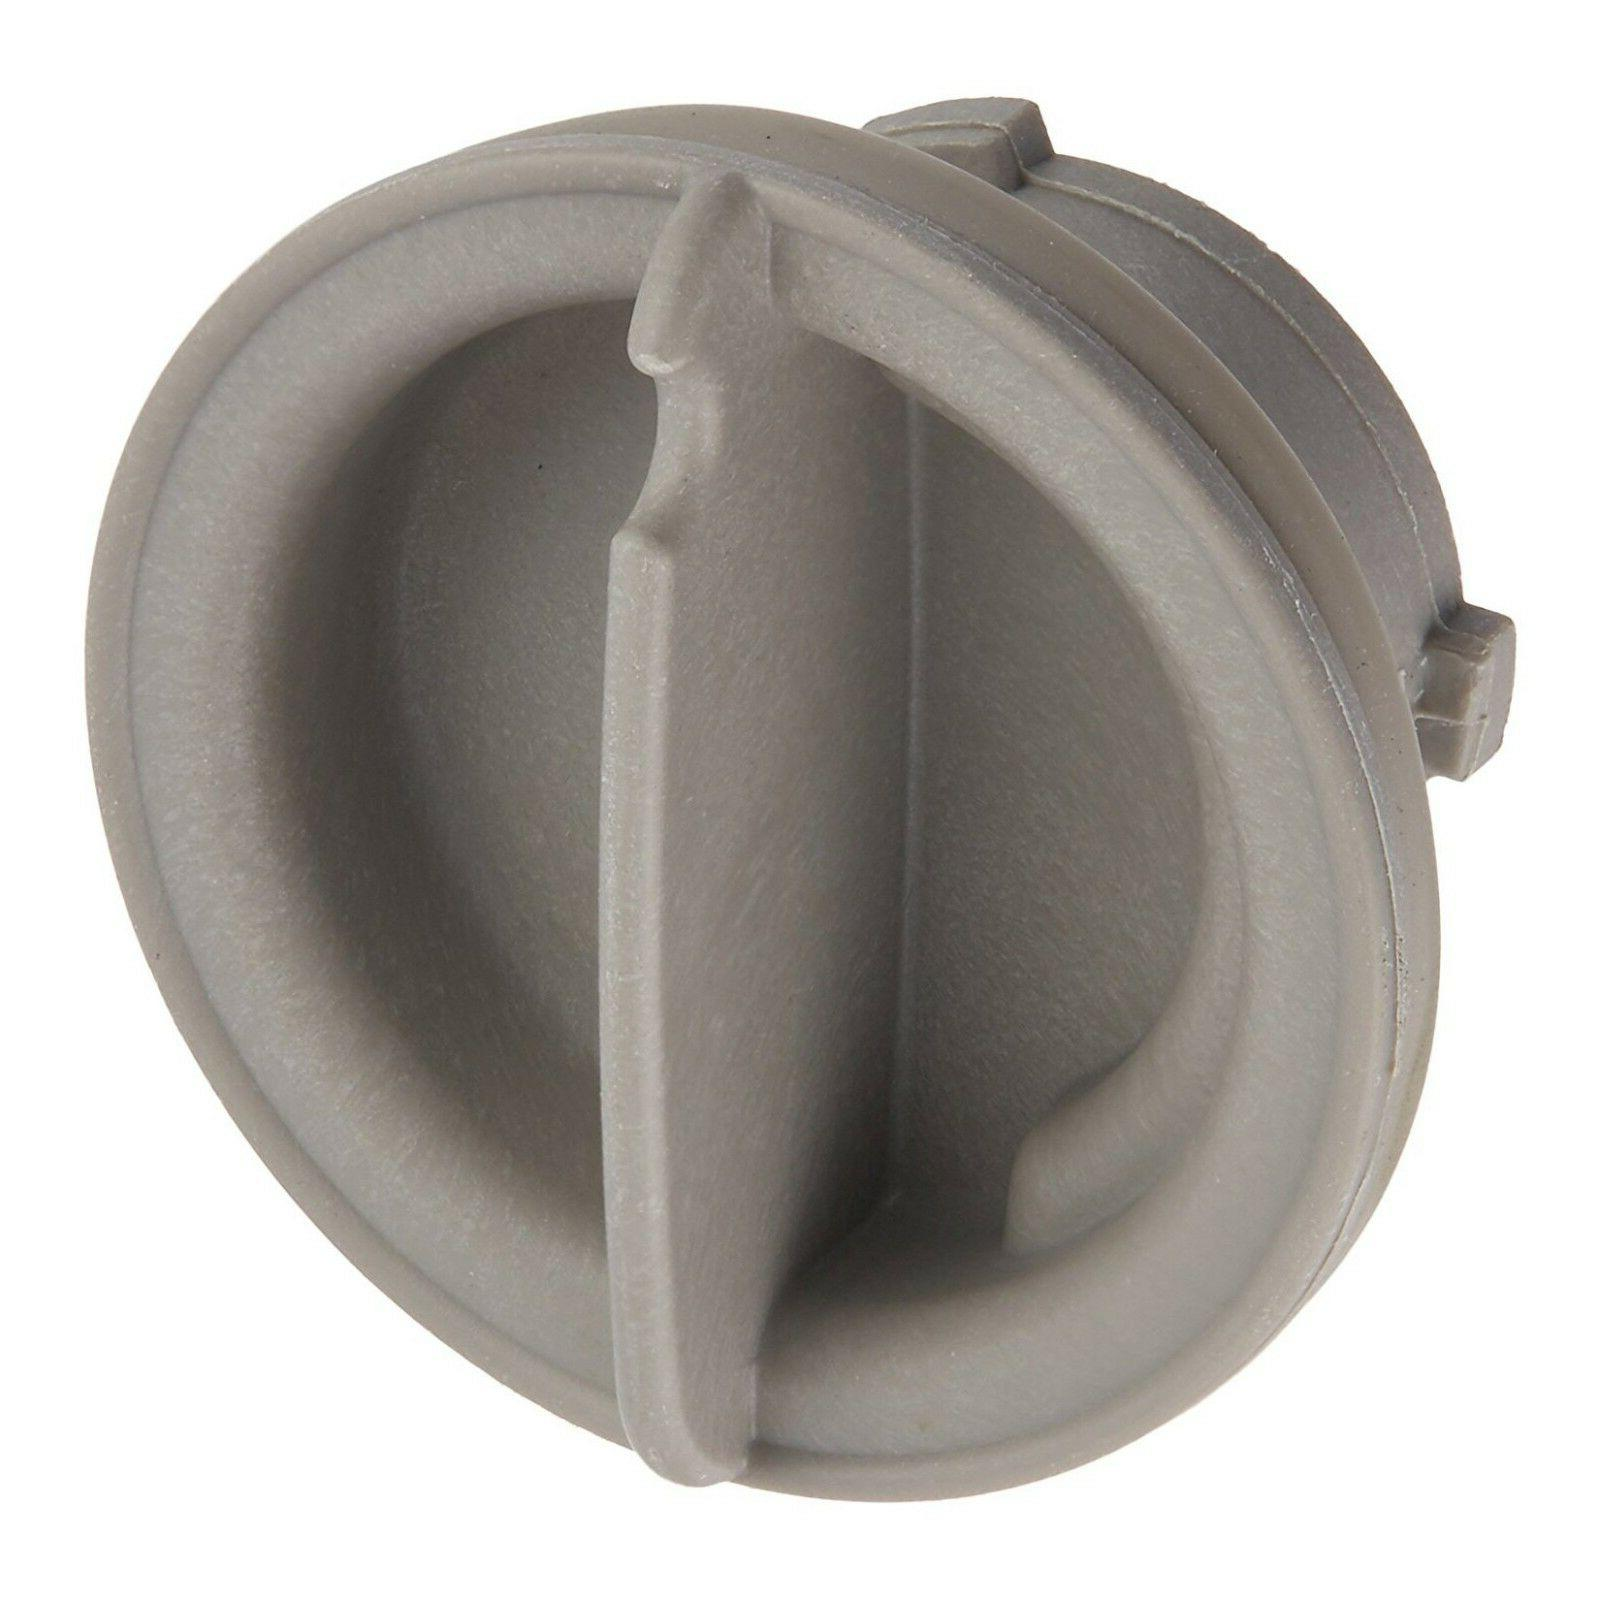 Whirlpool Dishwasher Rinse Aid Dispenser Cap Part # WP853338